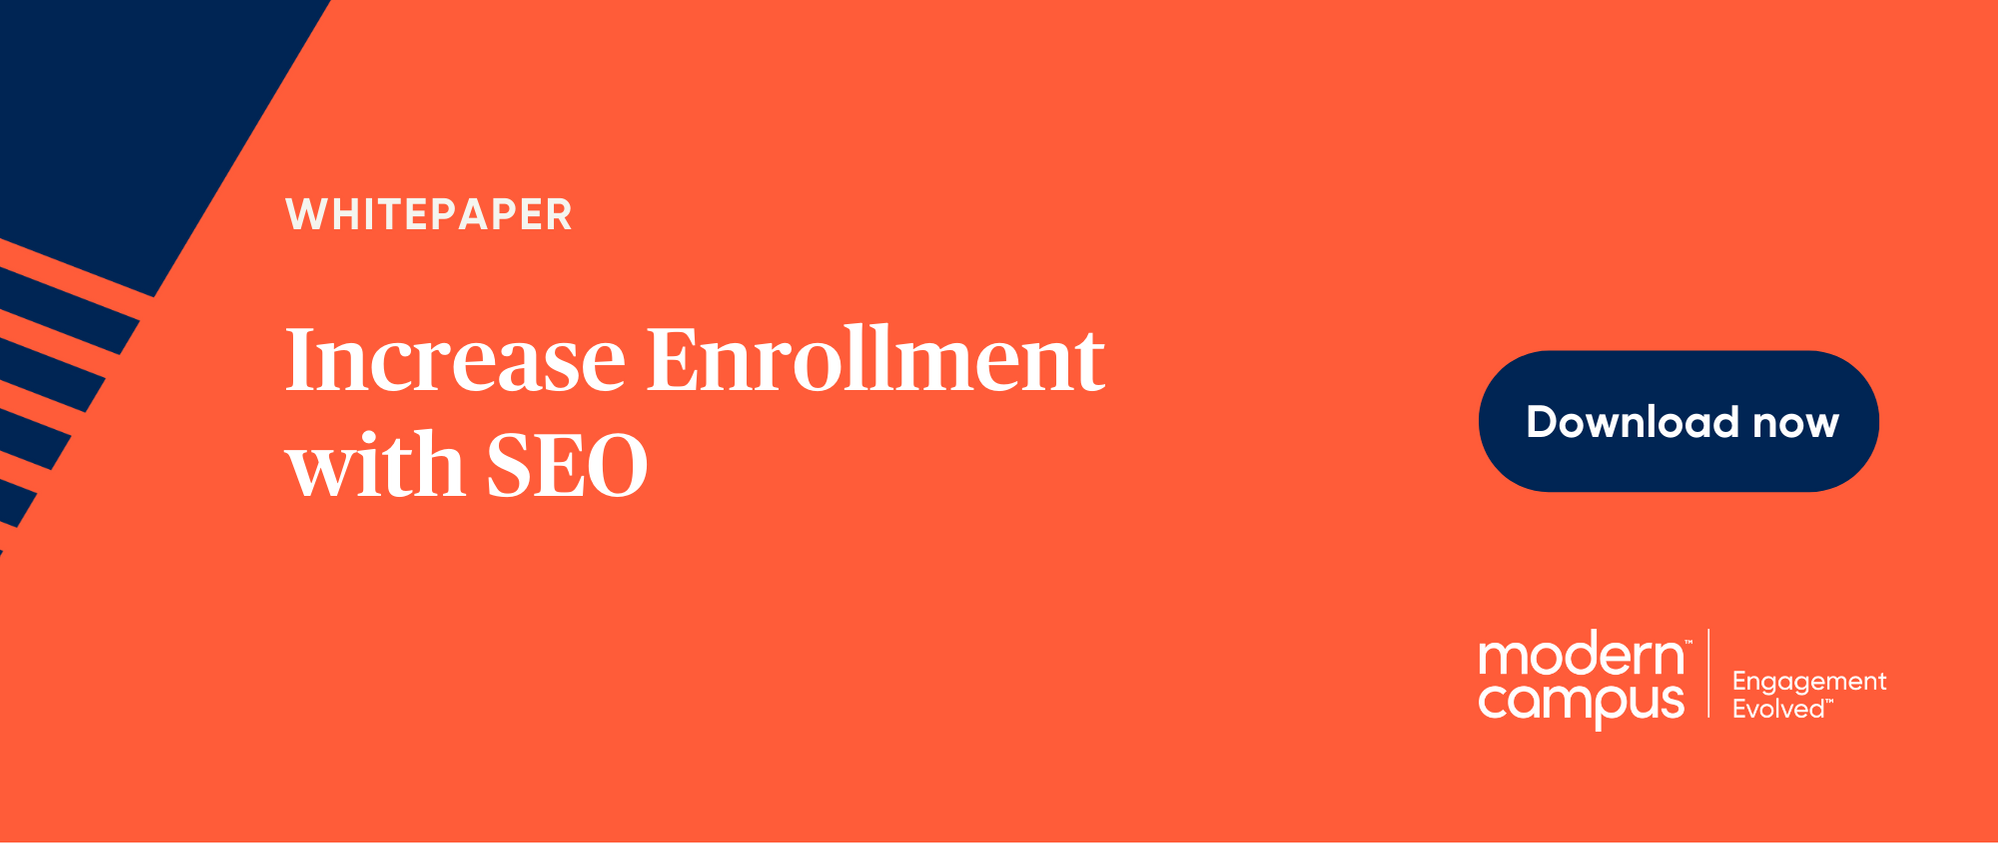 Increase Enrollment with SEO